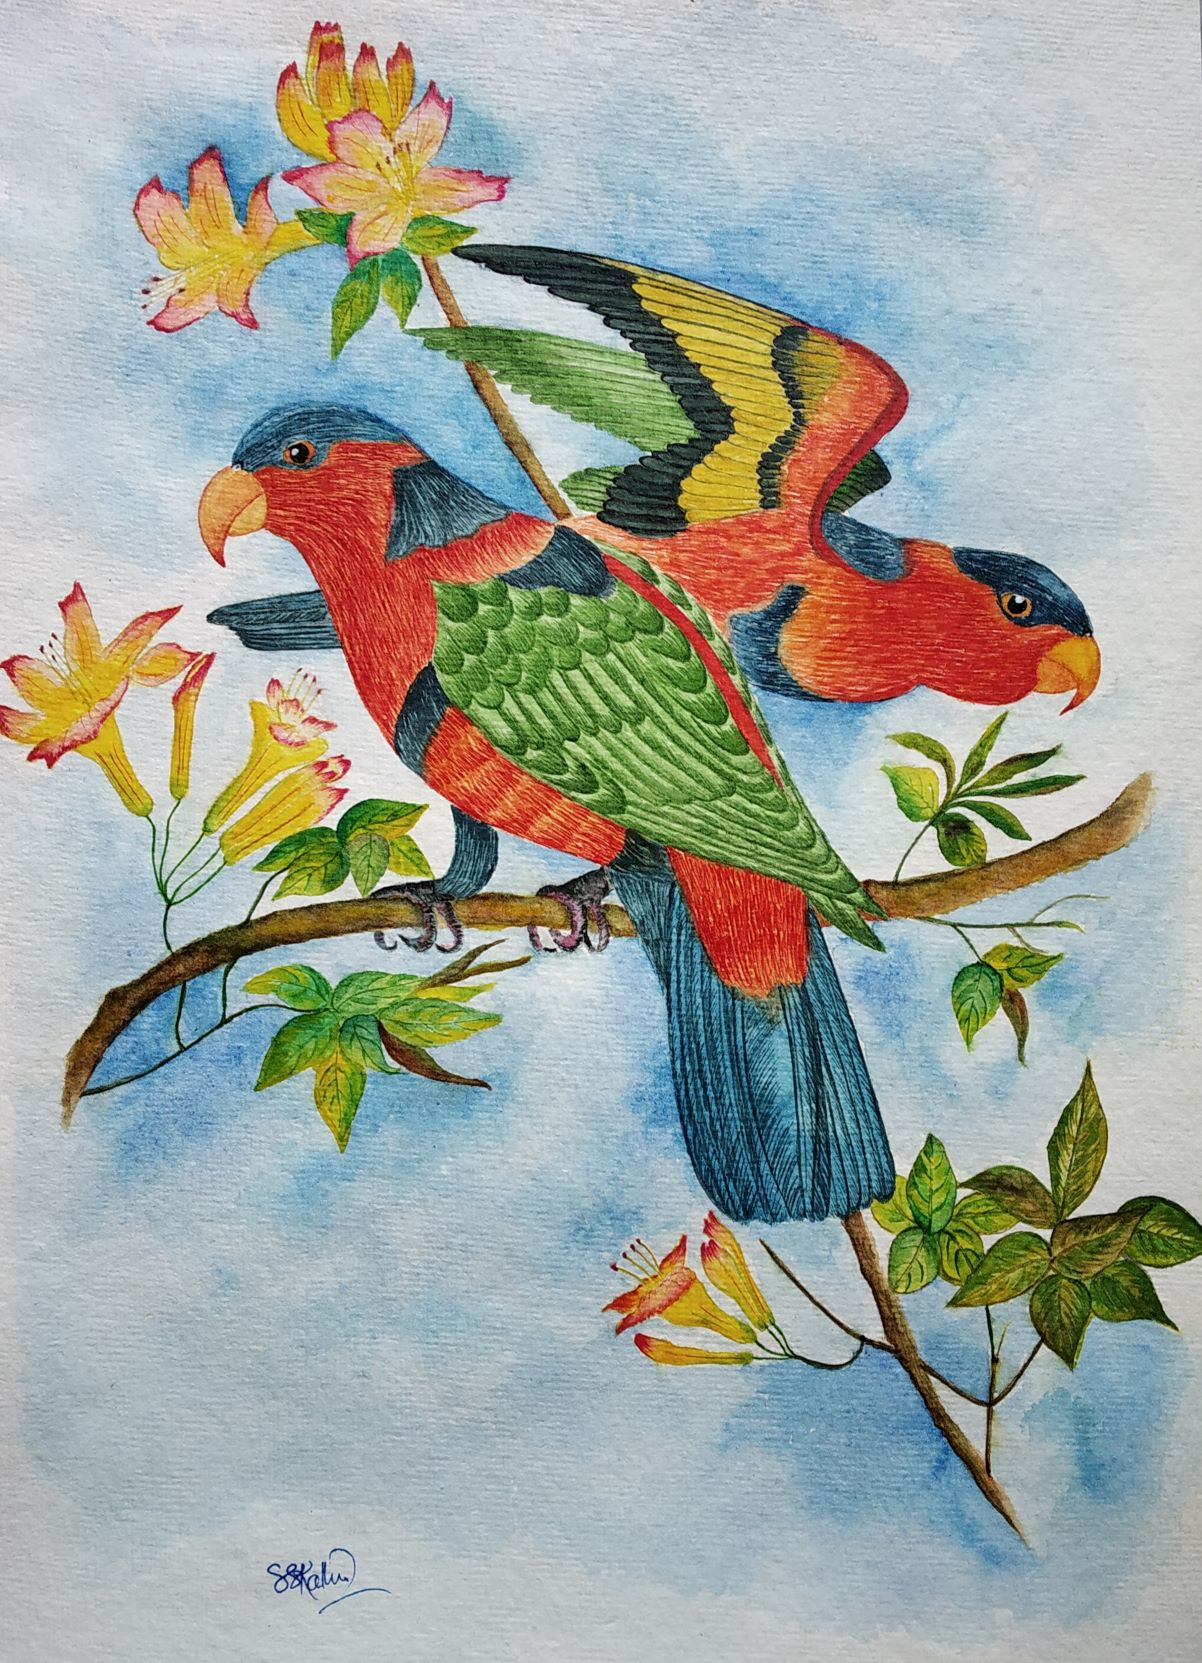 1601477538_intangible-beauty.jpg